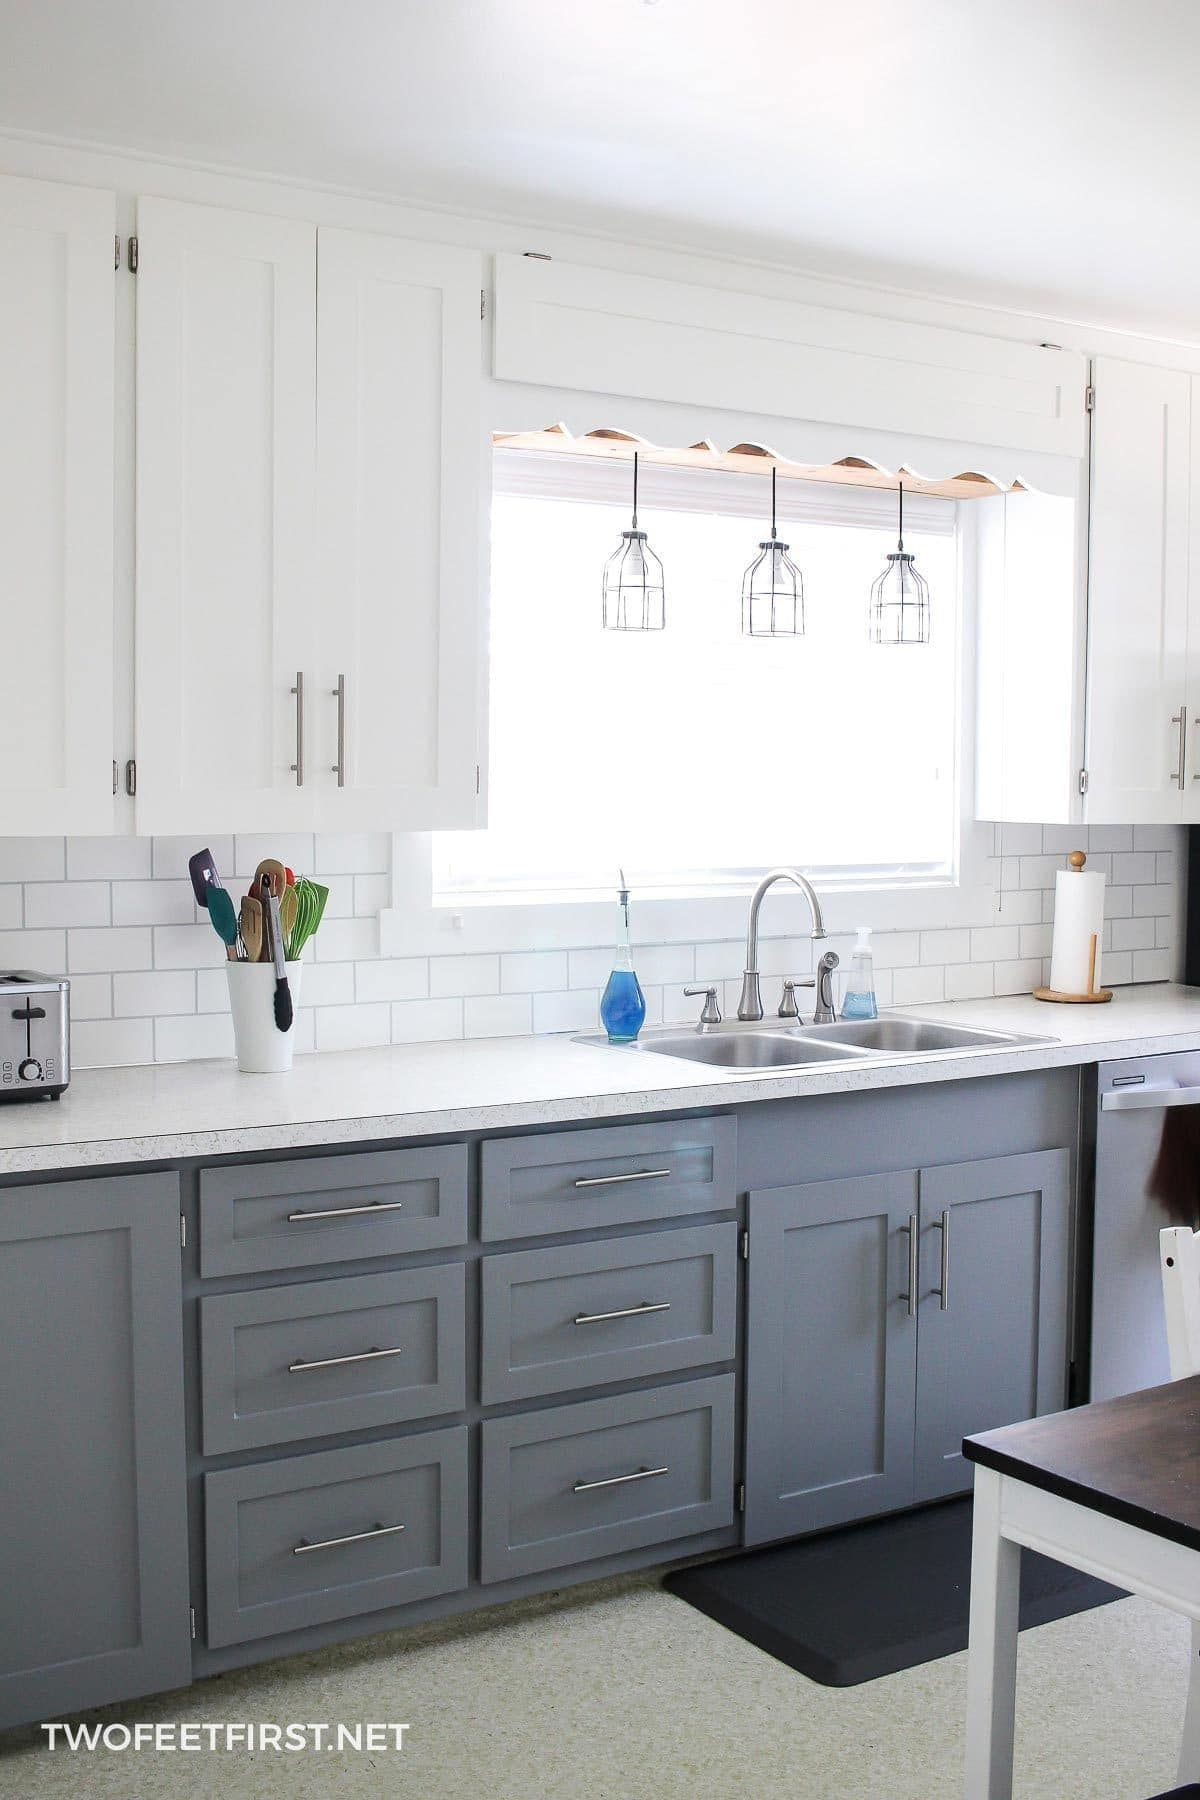 How S That Project Holding Up Updated Kitchen Cabinets Kitchen Cabinets On A Budget Best Kitchen Cabinets Update Kitchen Cabinets